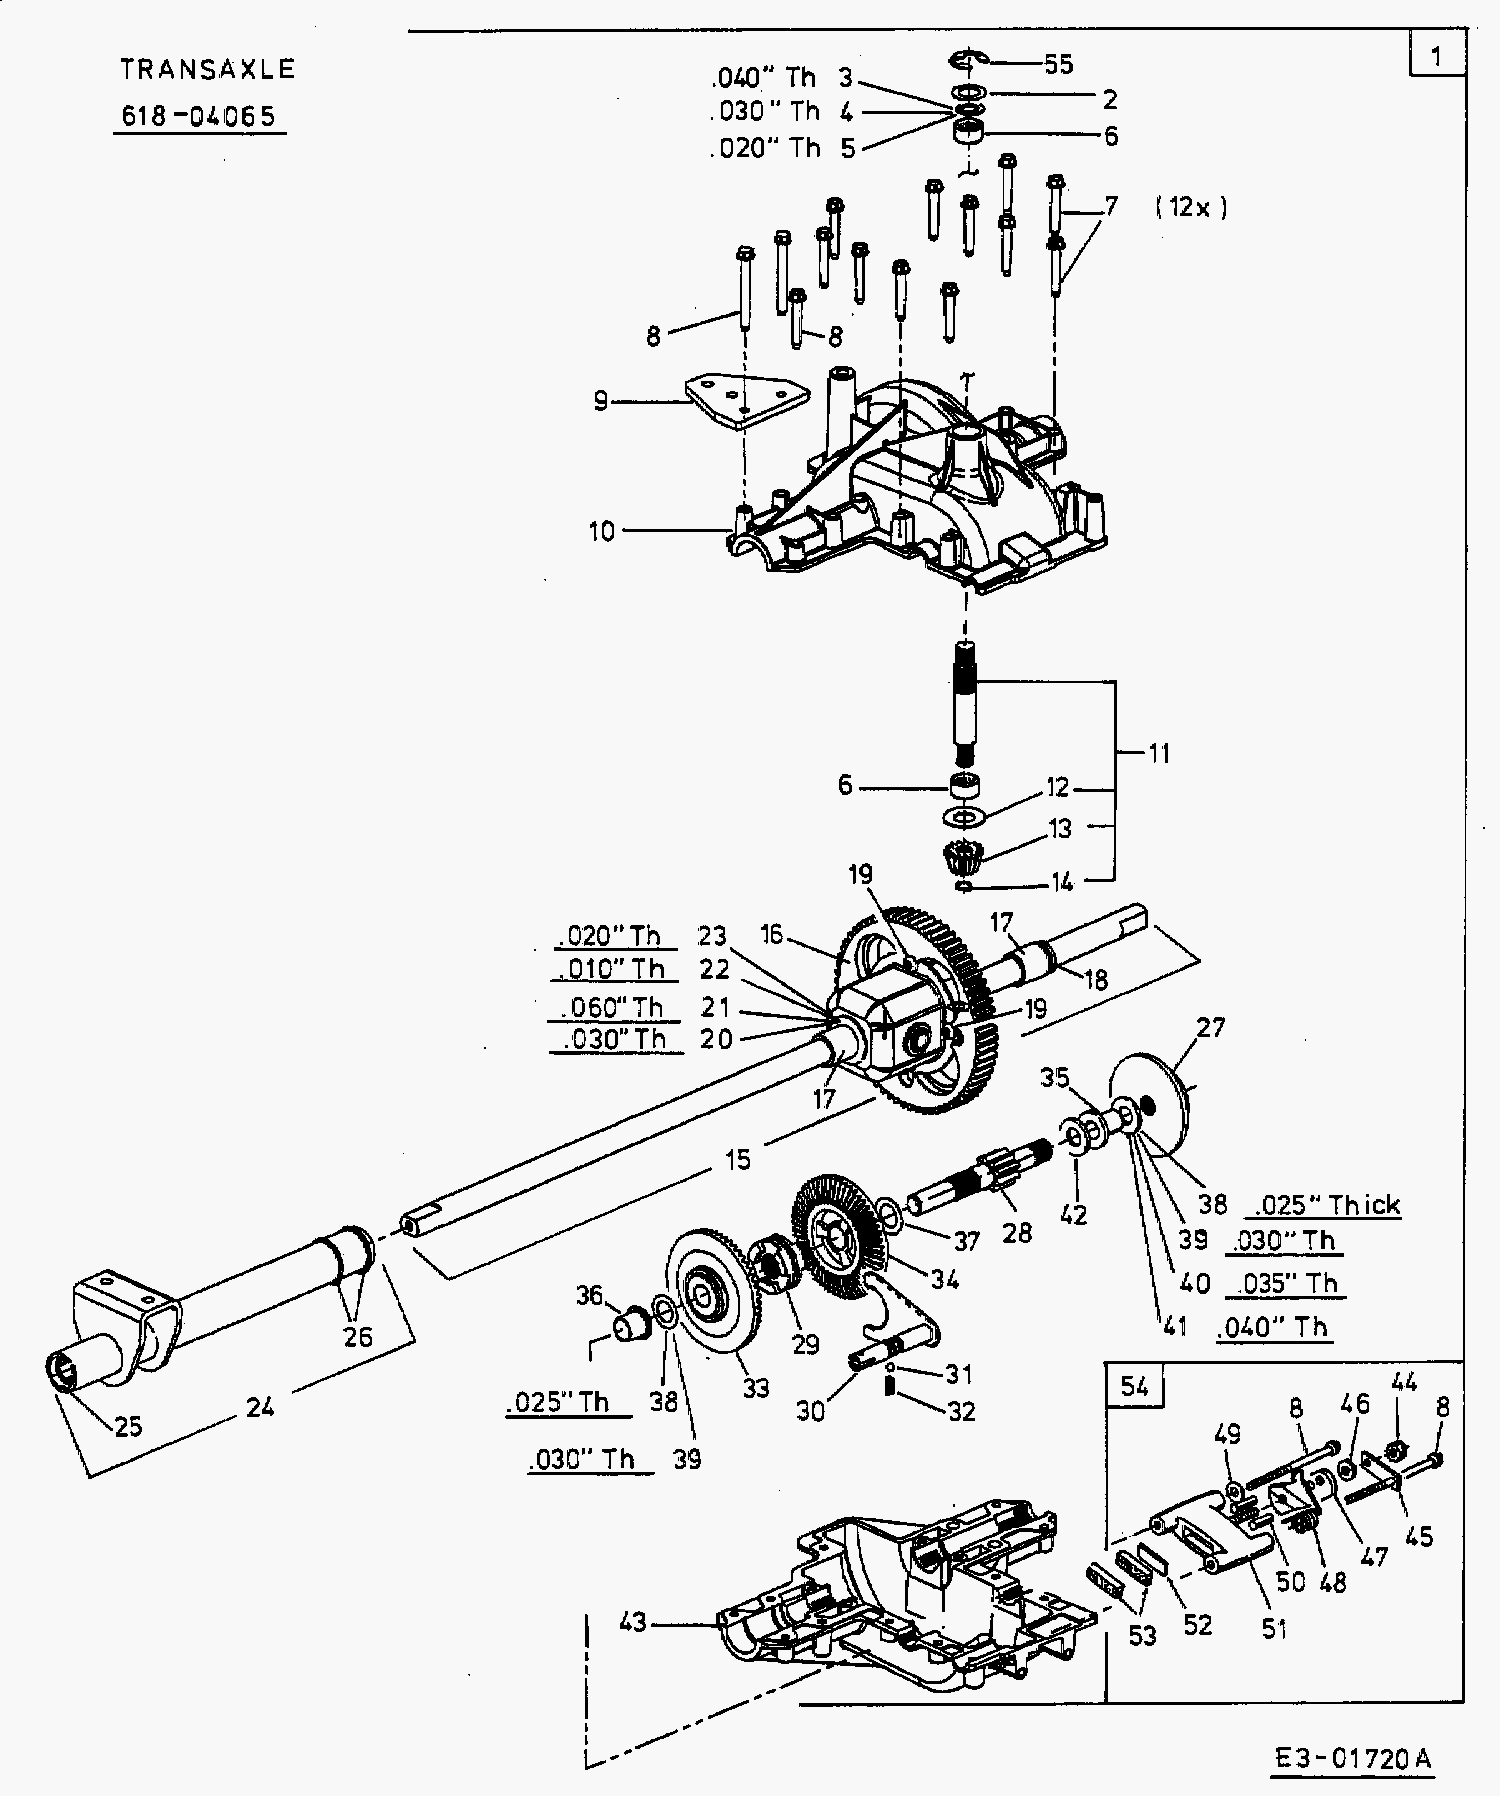 Jinma Tractor Wiring Diagram besides Peterbilt Tail Light Wiring Diagram moreover 61859 Running Engine Out Of Car furthermore E320 Mercedes Starter Wiring Diagram besides 1965 Ford Mustang Starter Solenoid Wiring Diagram. on chevy ignition switch wiring diagram